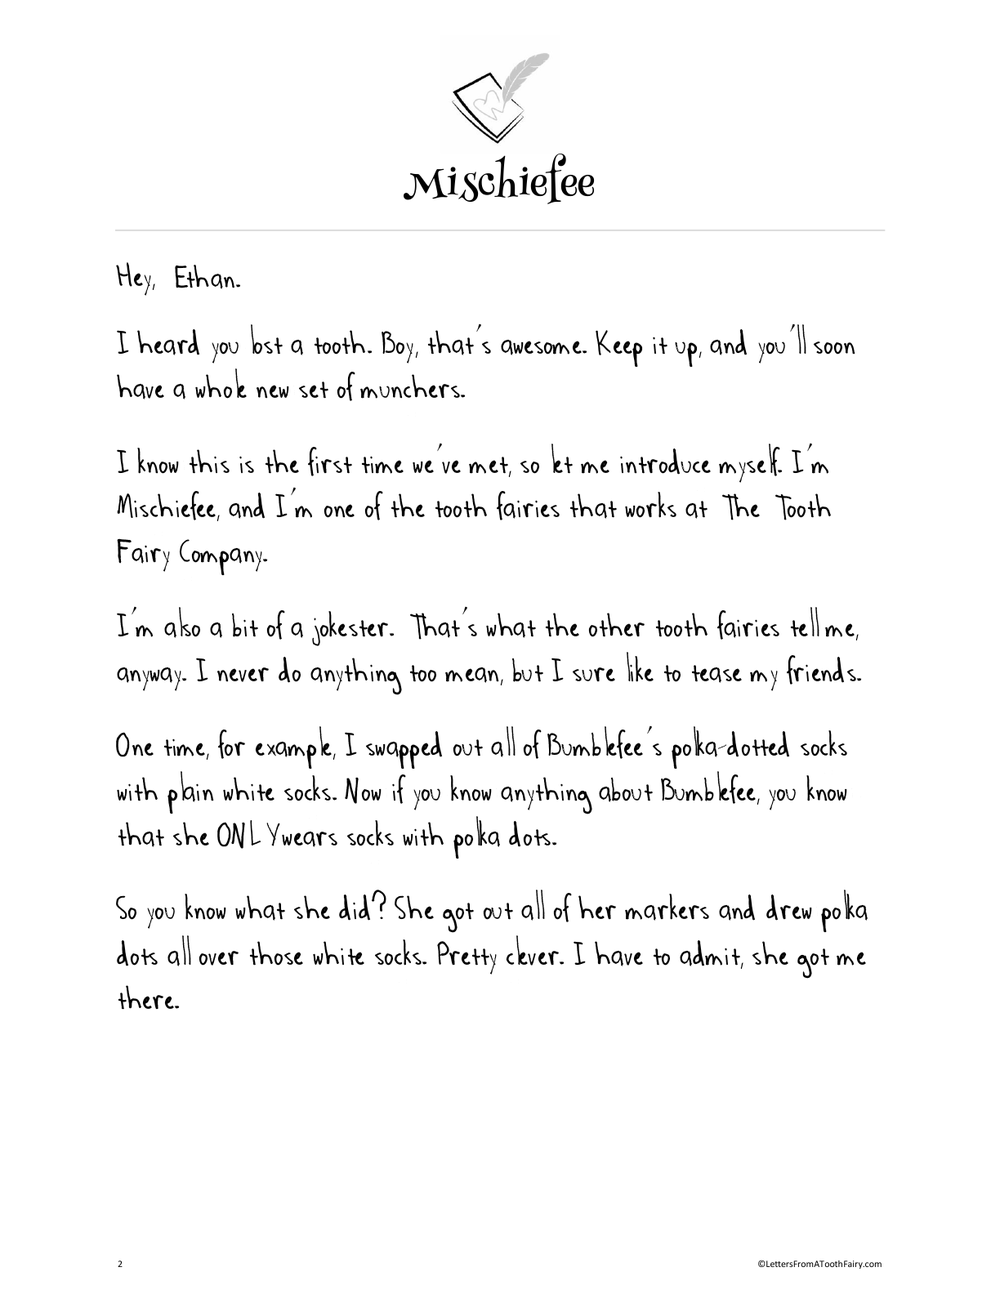 Does your kid like treasure hunts? In this free tooth fairy letter, Tooth Fairy Mischiefee hides the ToothLoot and gives your child five clues to find it.